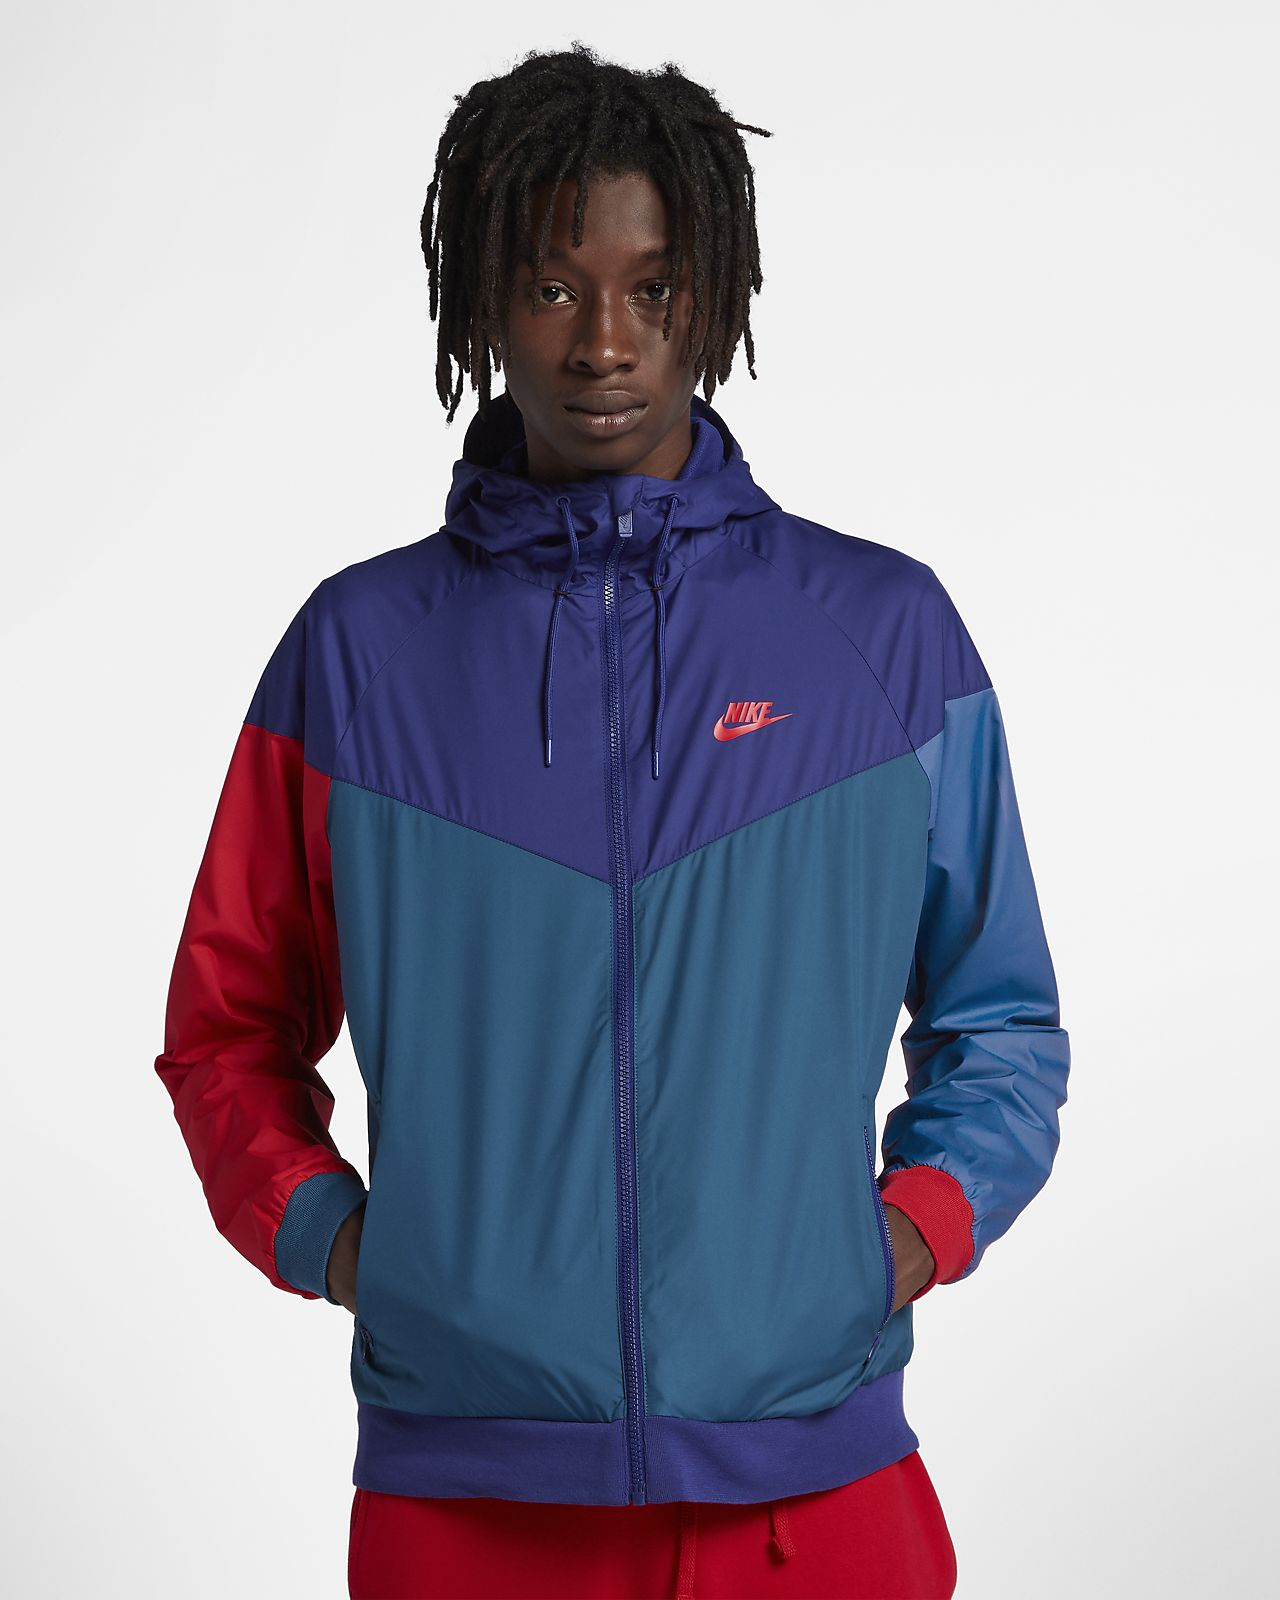 Low Resolution Nike Sportswear Windrunner Men s Jacket Nike Sportswear  Windrunner Men s Jacket a2f73cb50